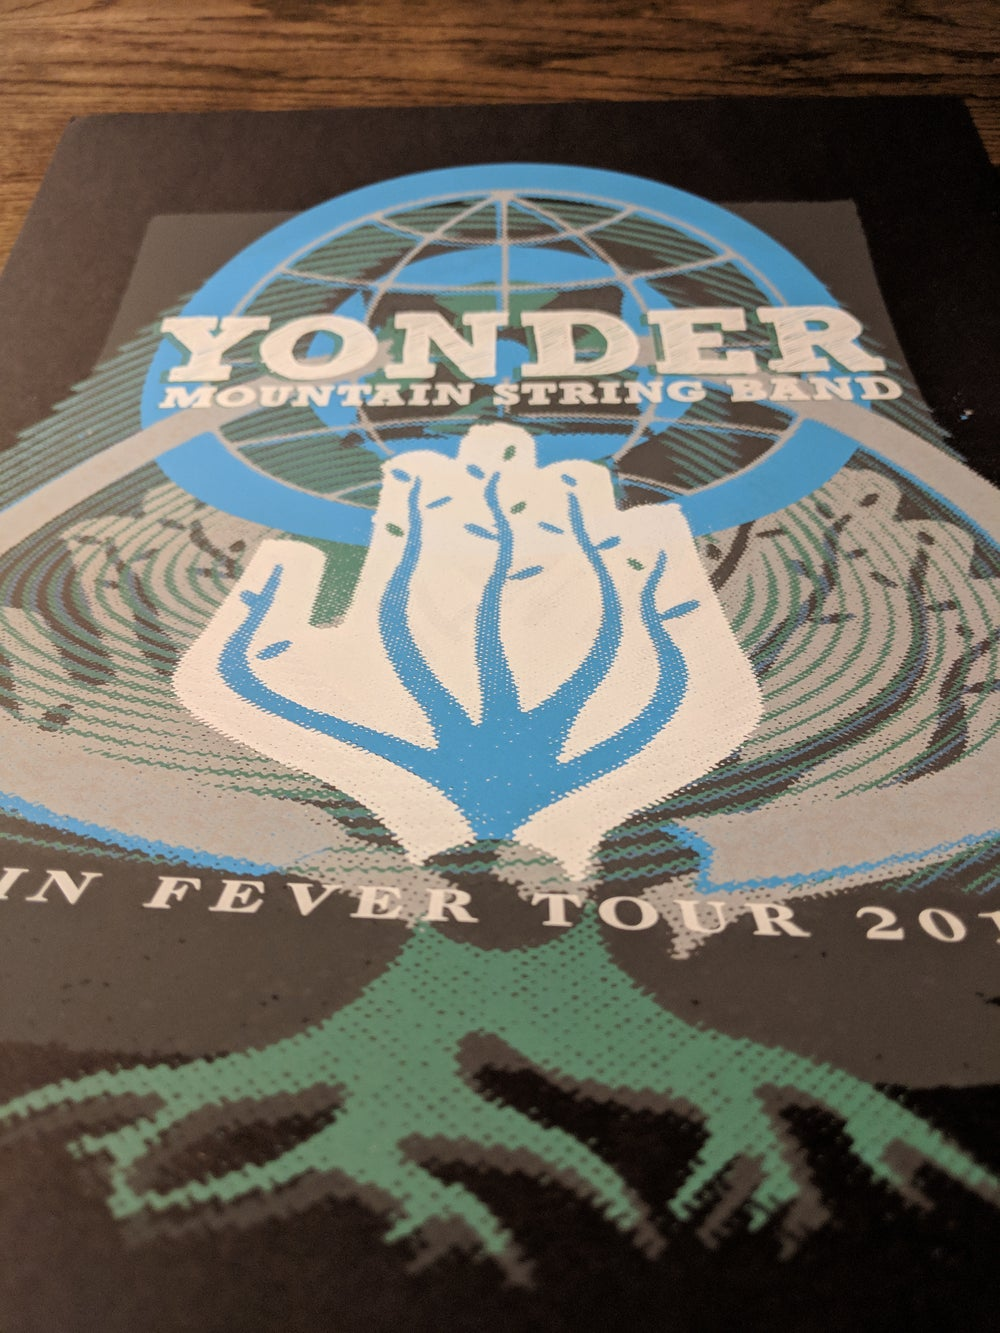 Yonder Mountain String Band - Cabin Fever Tour Poster **RECENTLY DISCOVERED**